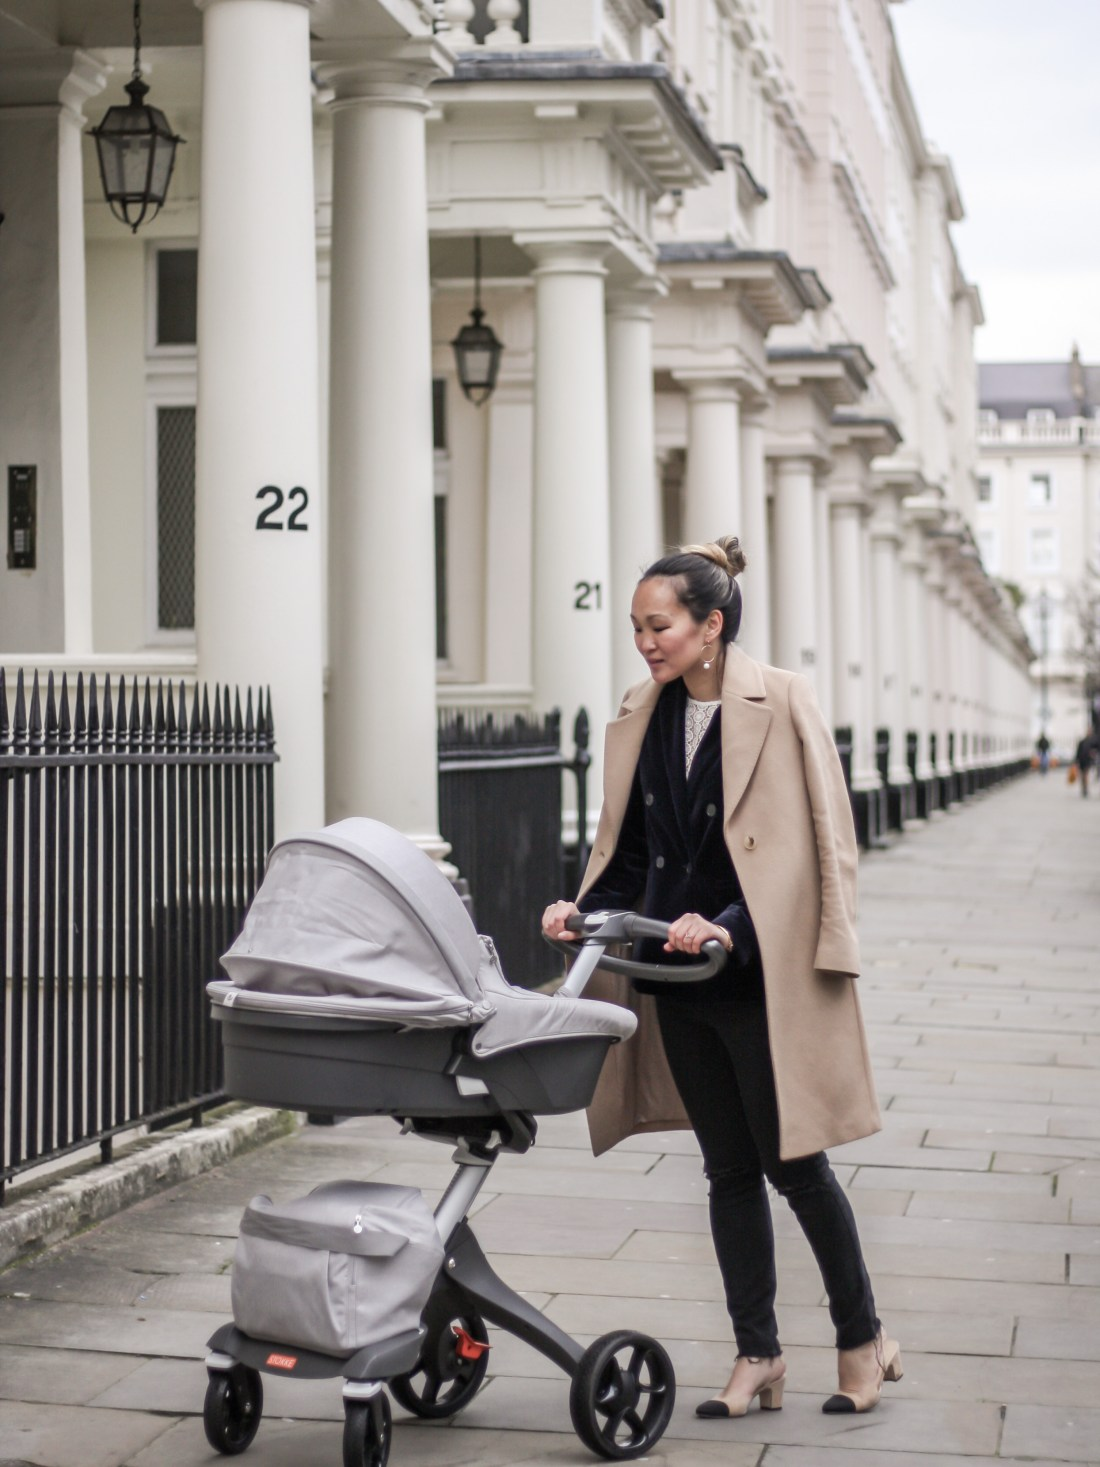 Stokke Xplory Pushchair in Pimlico, London